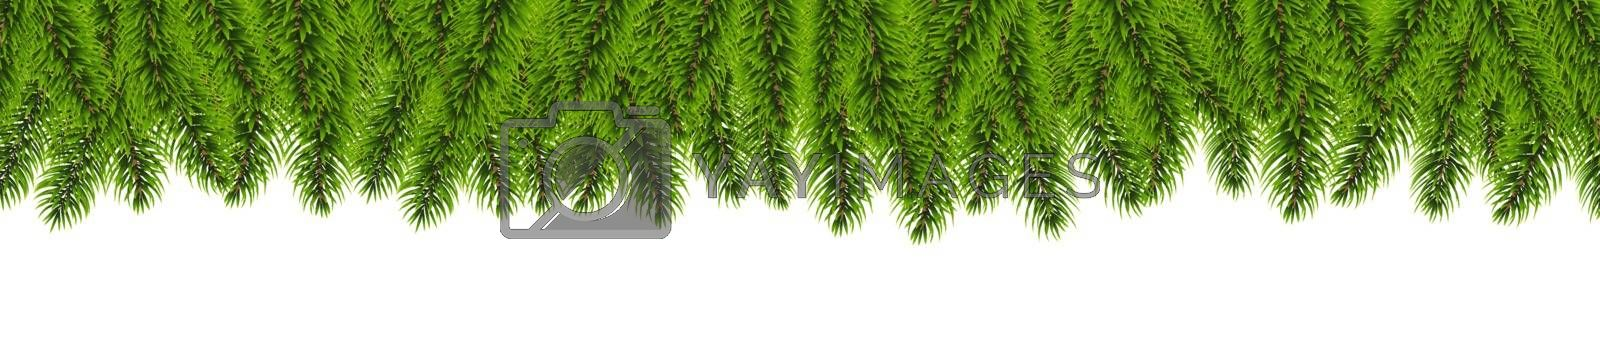 Fir Tree Border Isolated White Background, Vector Illustration